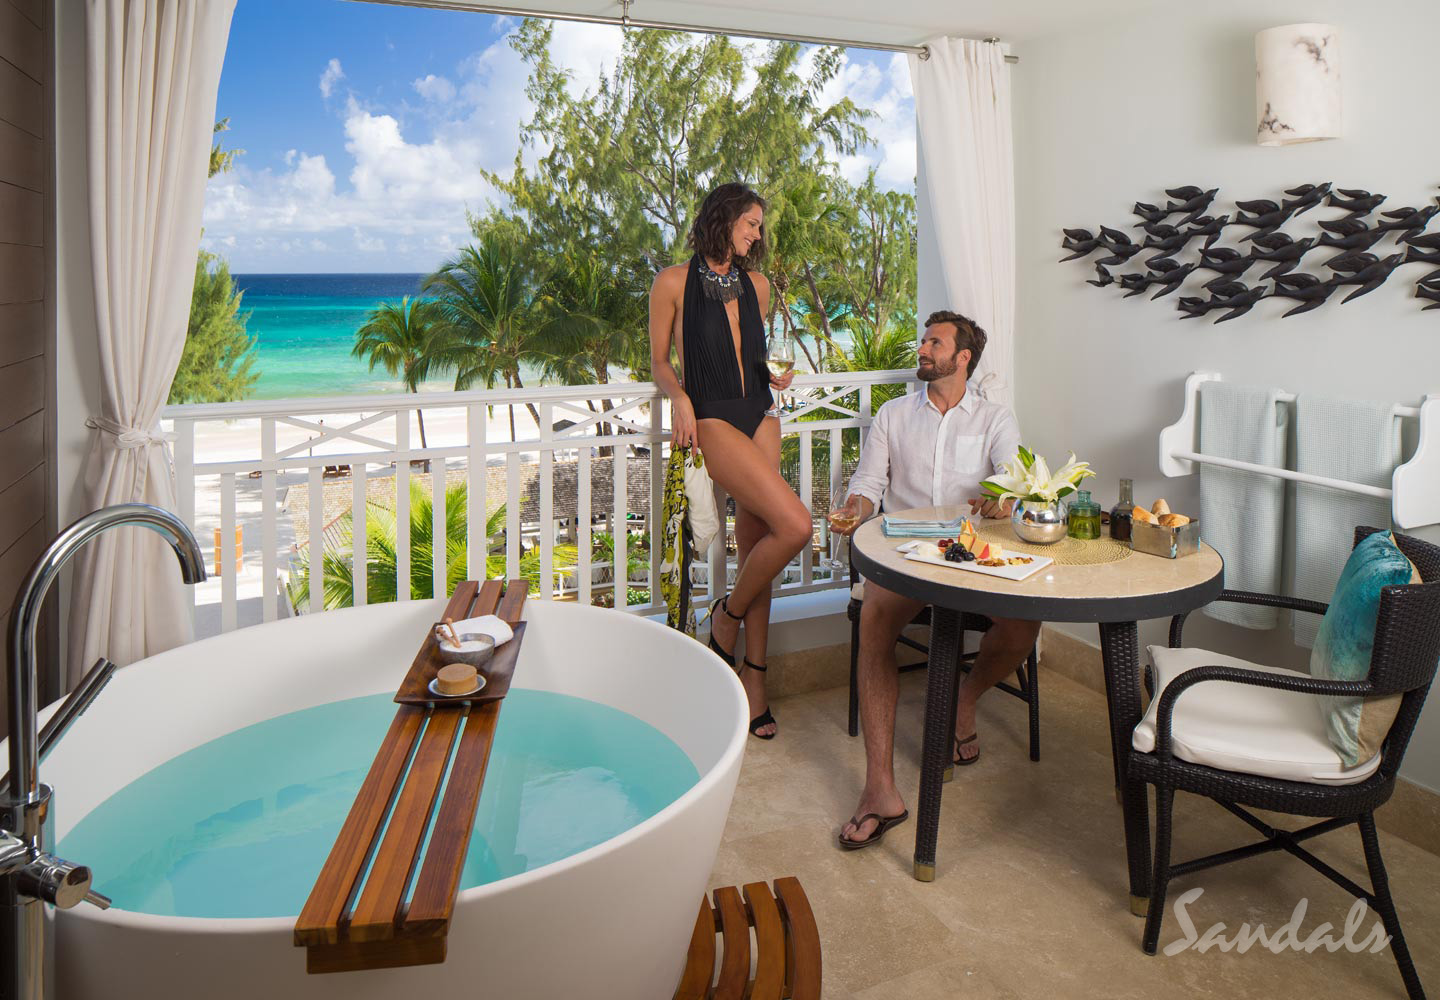 Travel Agency All-Inclusive Resort Sandals Barbados 26